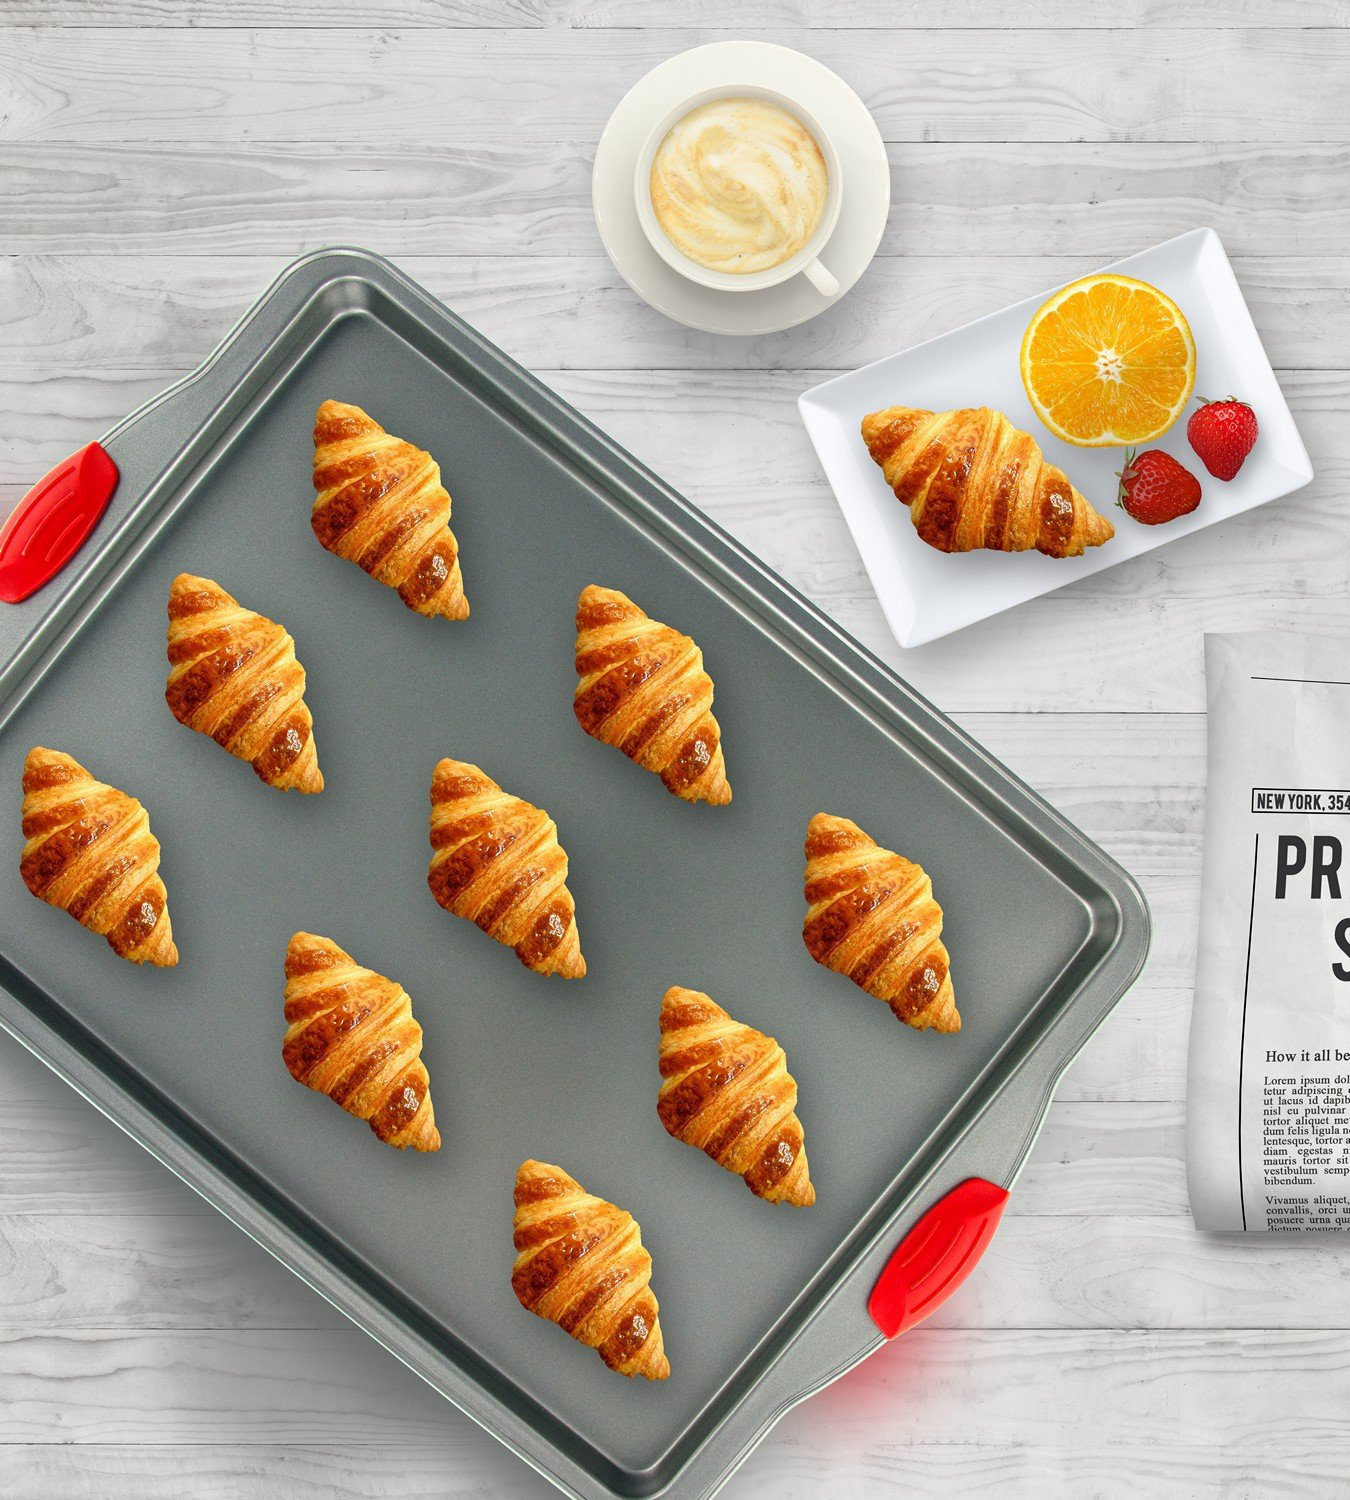 Boxiki Kitchen Nonstick Baking Sheet Pan | 100% Non-Toxic Rimmed Stainless Steel Baking Sheet, No Chemicals or Aluminum | Dent, Warp & Rust Resistant Heavy Gauge Steel Oven Baking Sheet (1) by Boxiki Kitchen (Image #2)